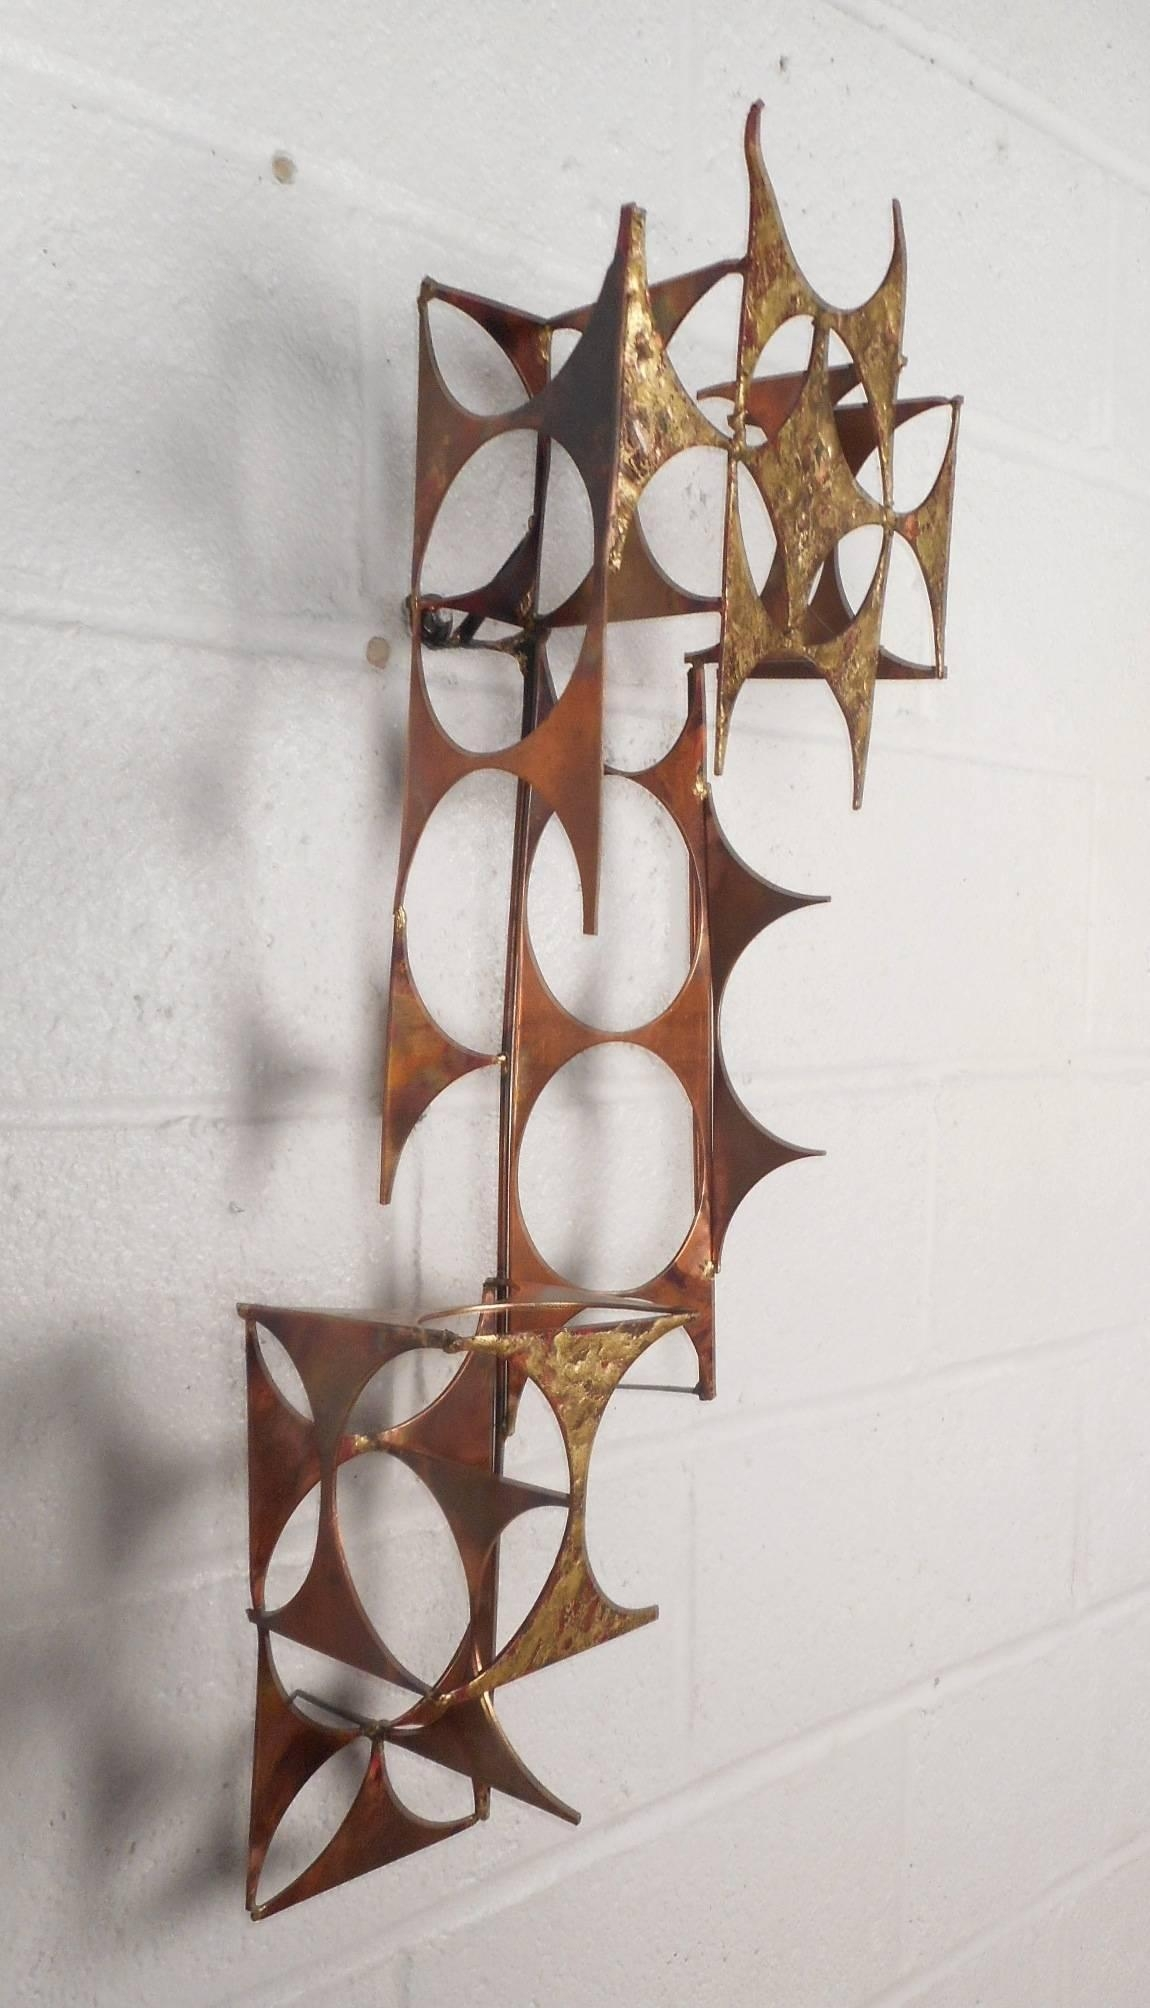 Mid Century Modern C Jere Style Copper And Brass Wall Art For With Regard To C Jere Wall Art (Image 18 of 20)